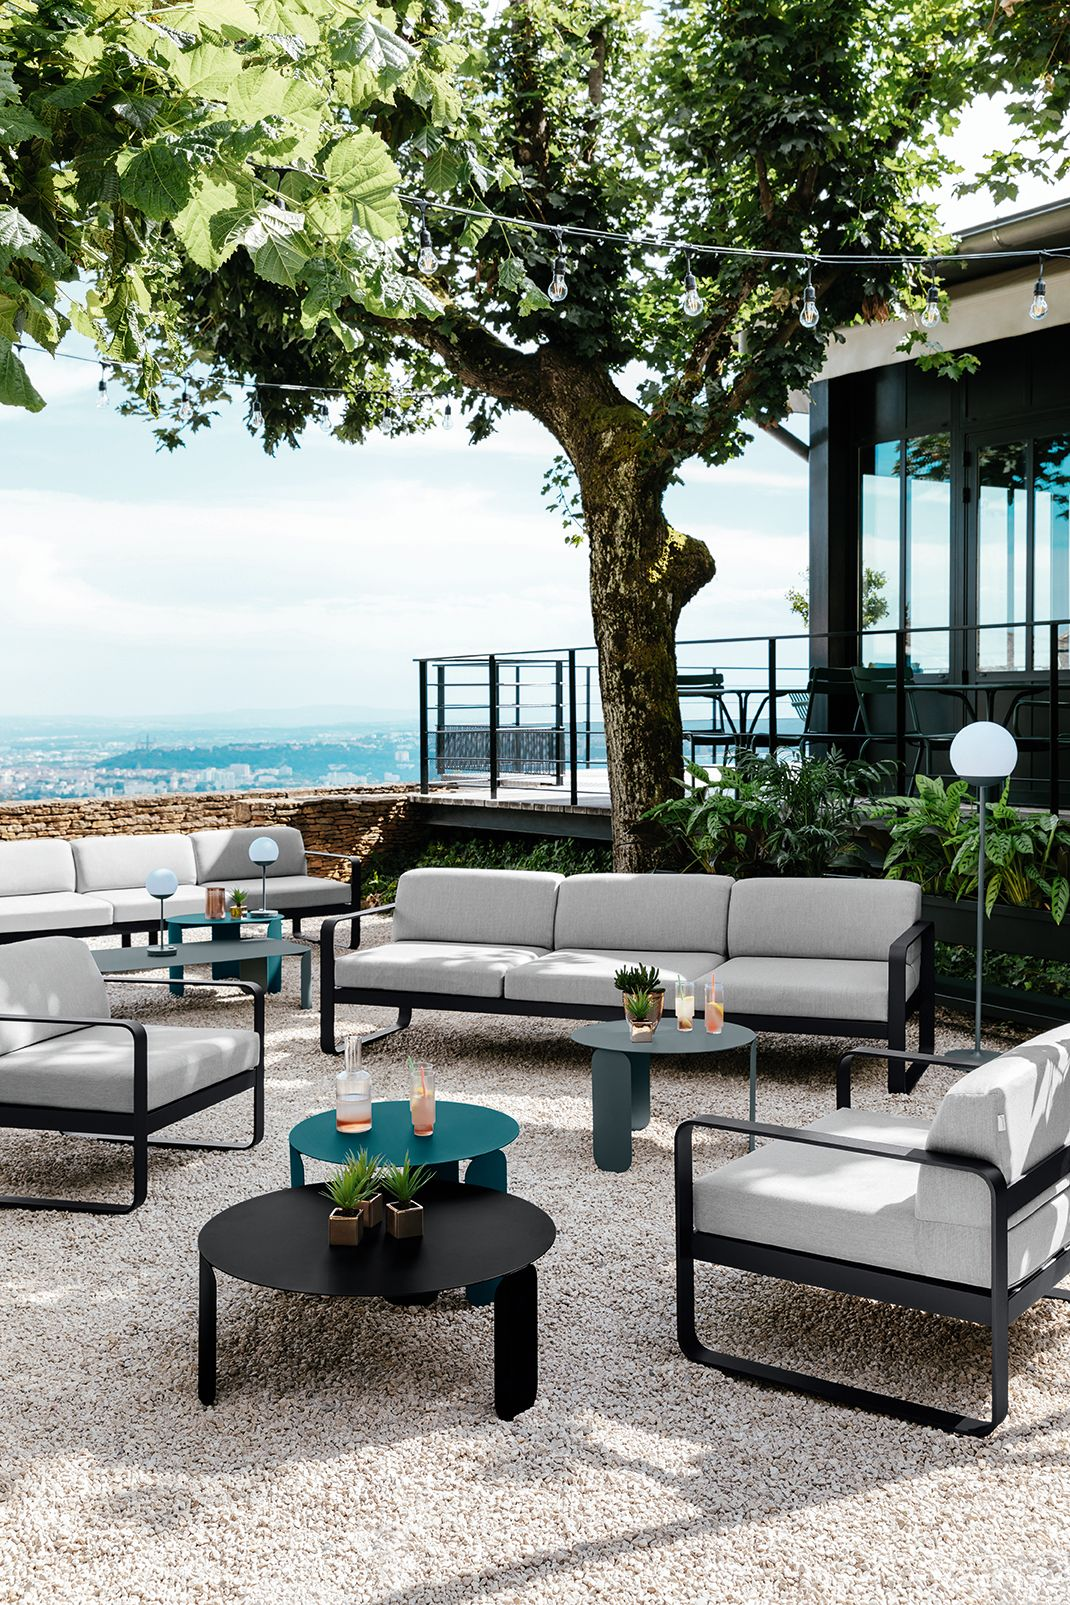 terrasse #coin #lounge #hotel #mobilier #canapé #table ...